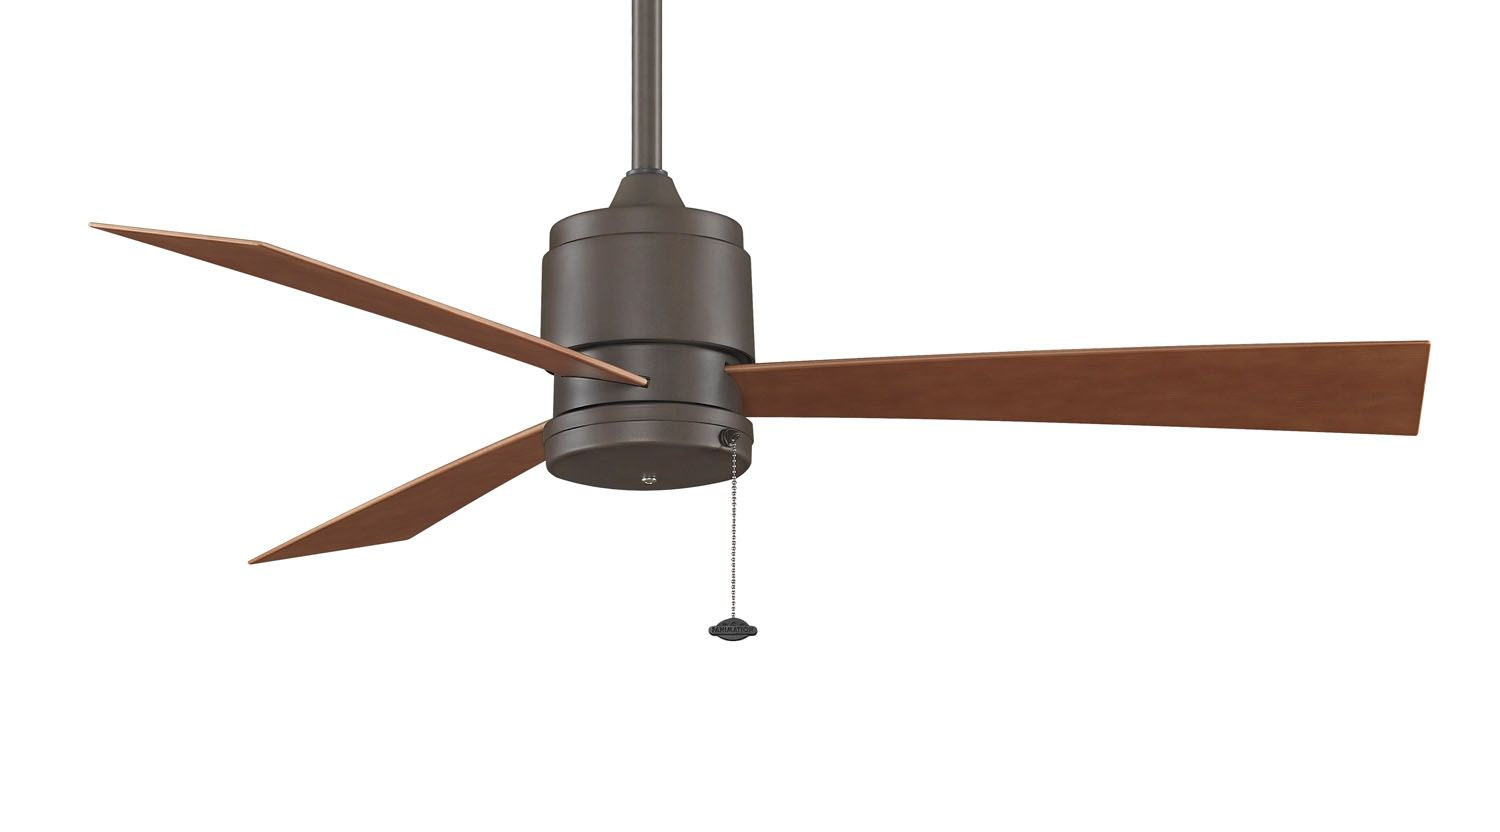 Airplane propeller outdoor ceiling fan